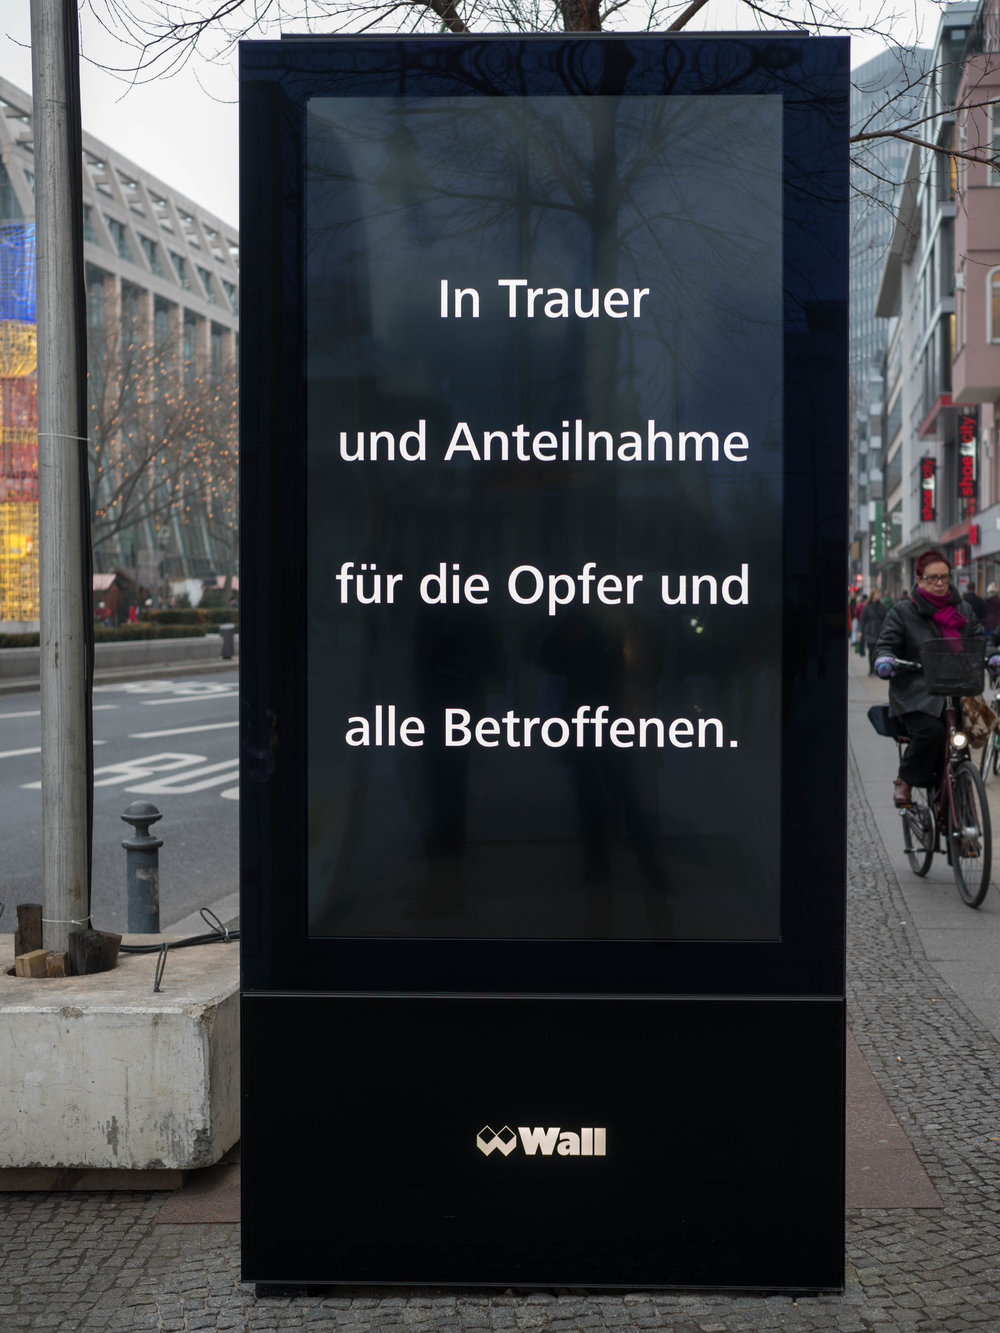 A simple message of sympathy replaces all the advertising displays in the city